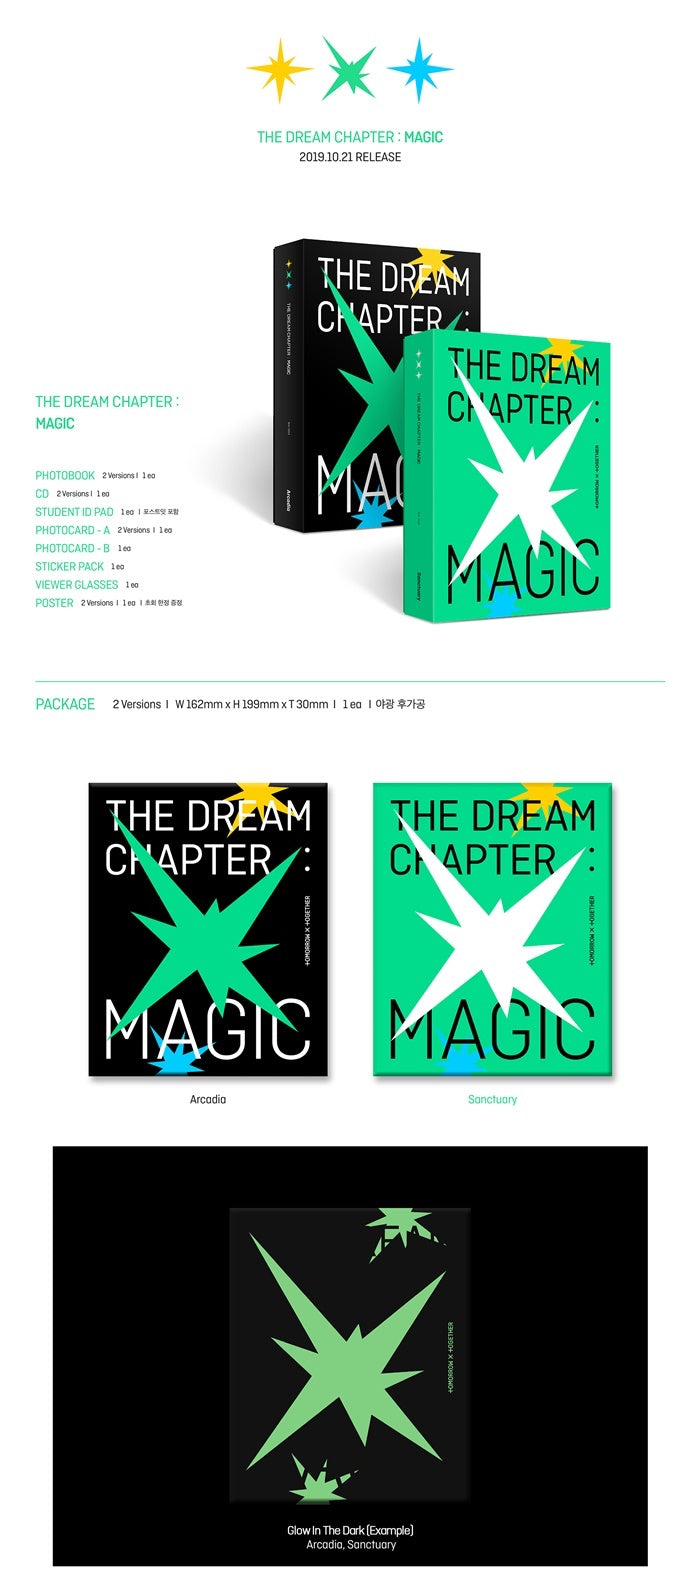 TXT - The Dream Chapter: Magic - jetzt lieferbar!